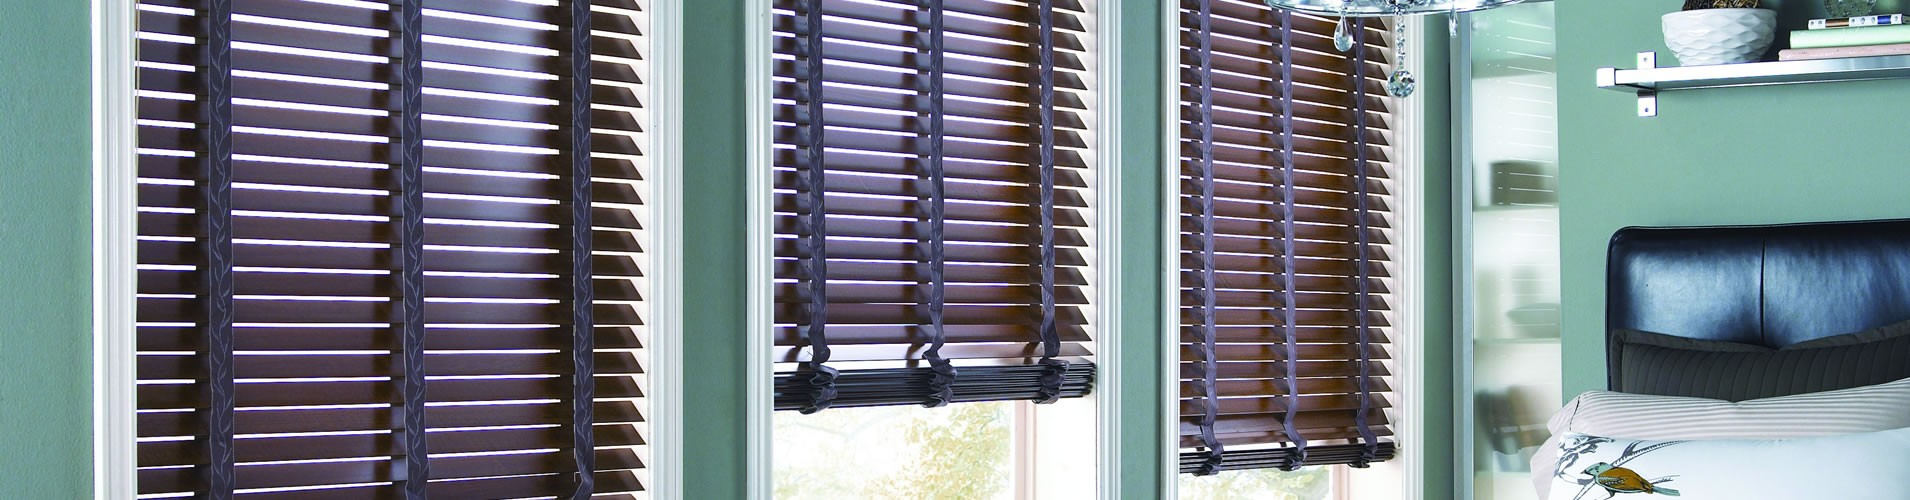 Houston wood blinds